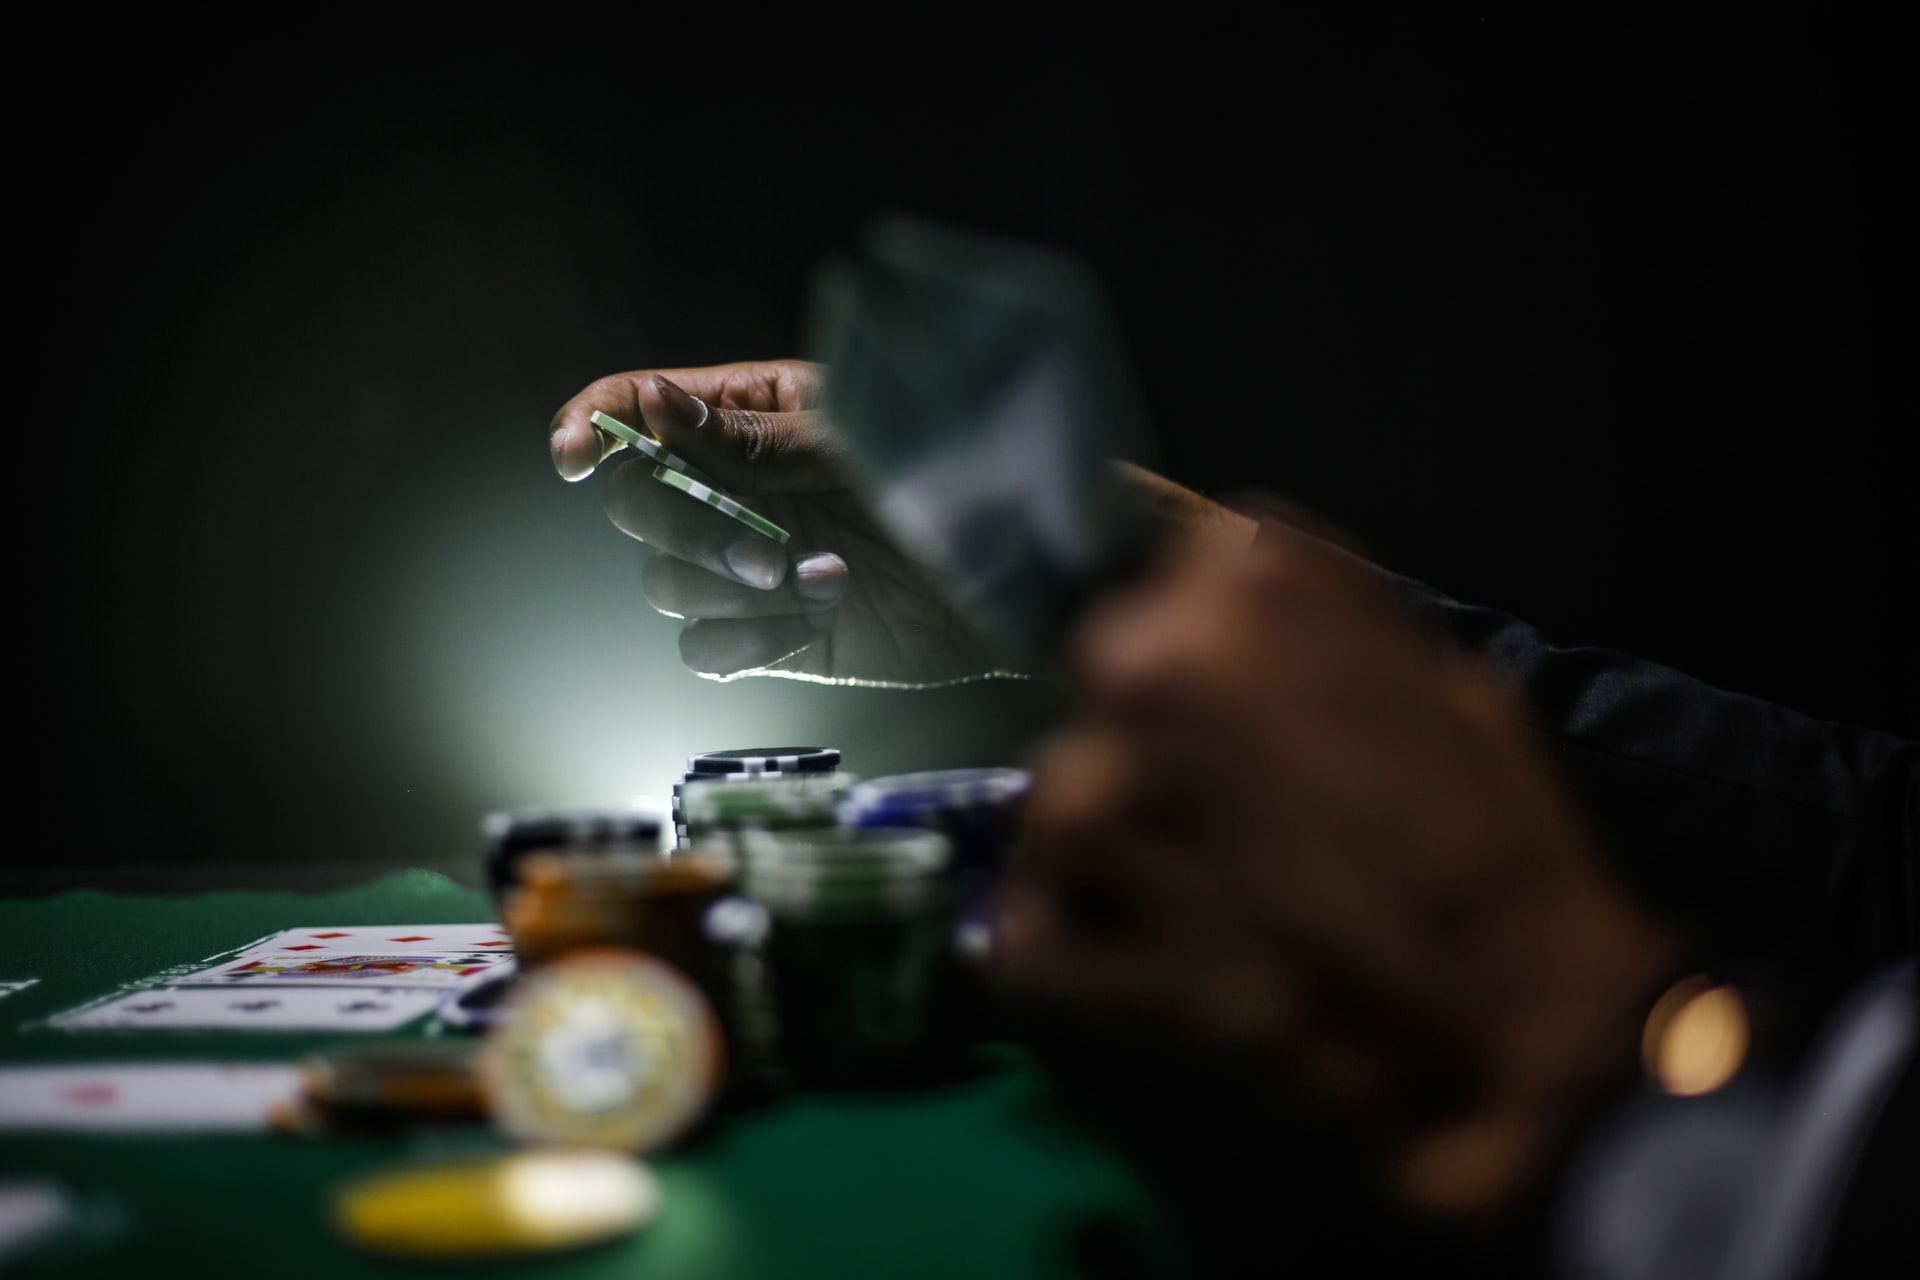 US casino hotel sector's market size shrunk by 35% with shift to online gambling